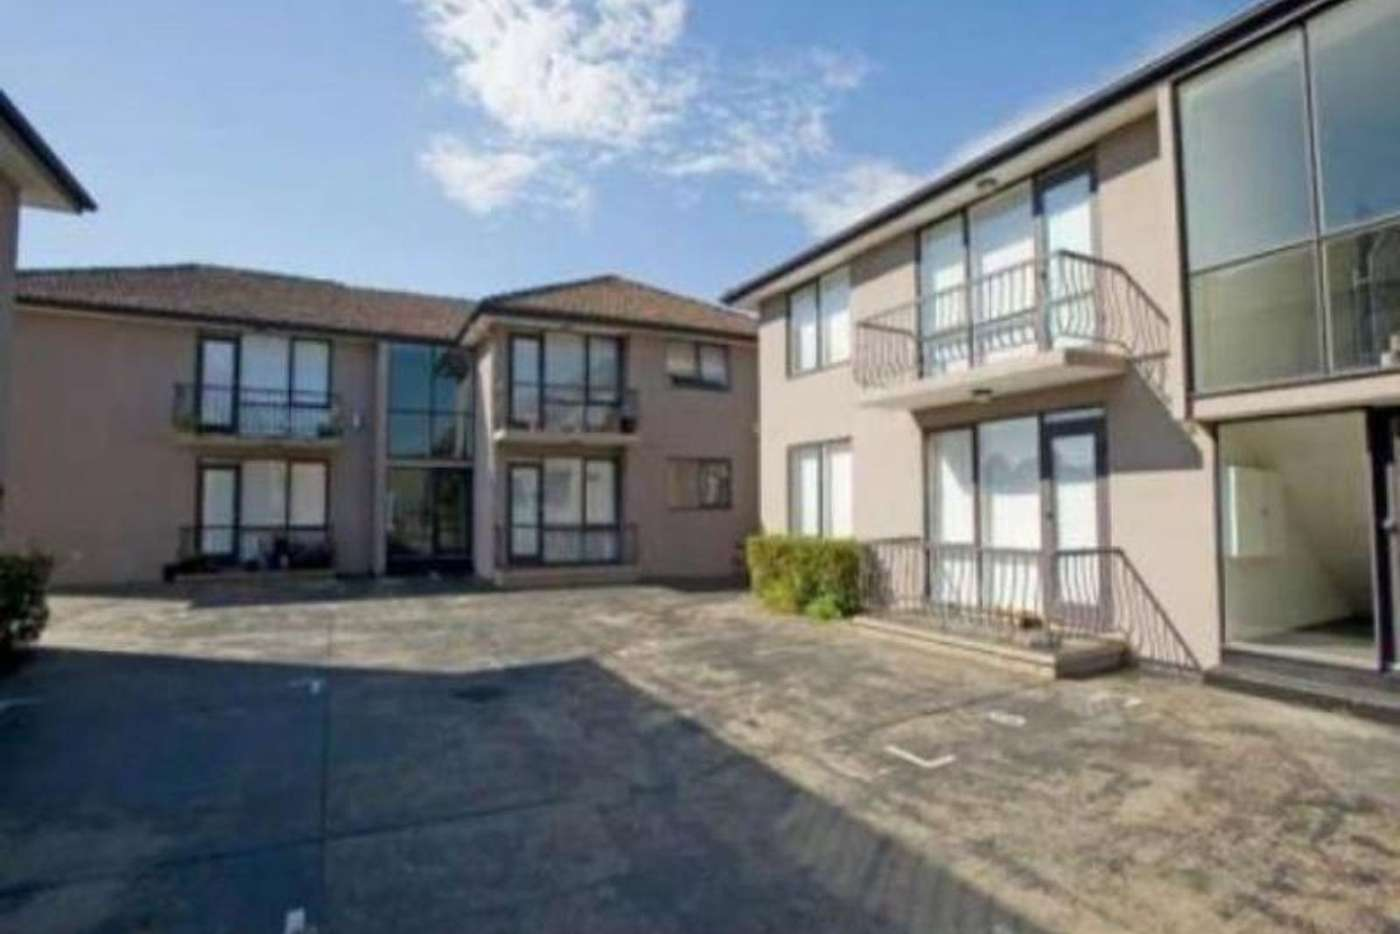 Main view of Homely apartment listing, 13/44 Woolton Avenue, Thornbury VIC 3071